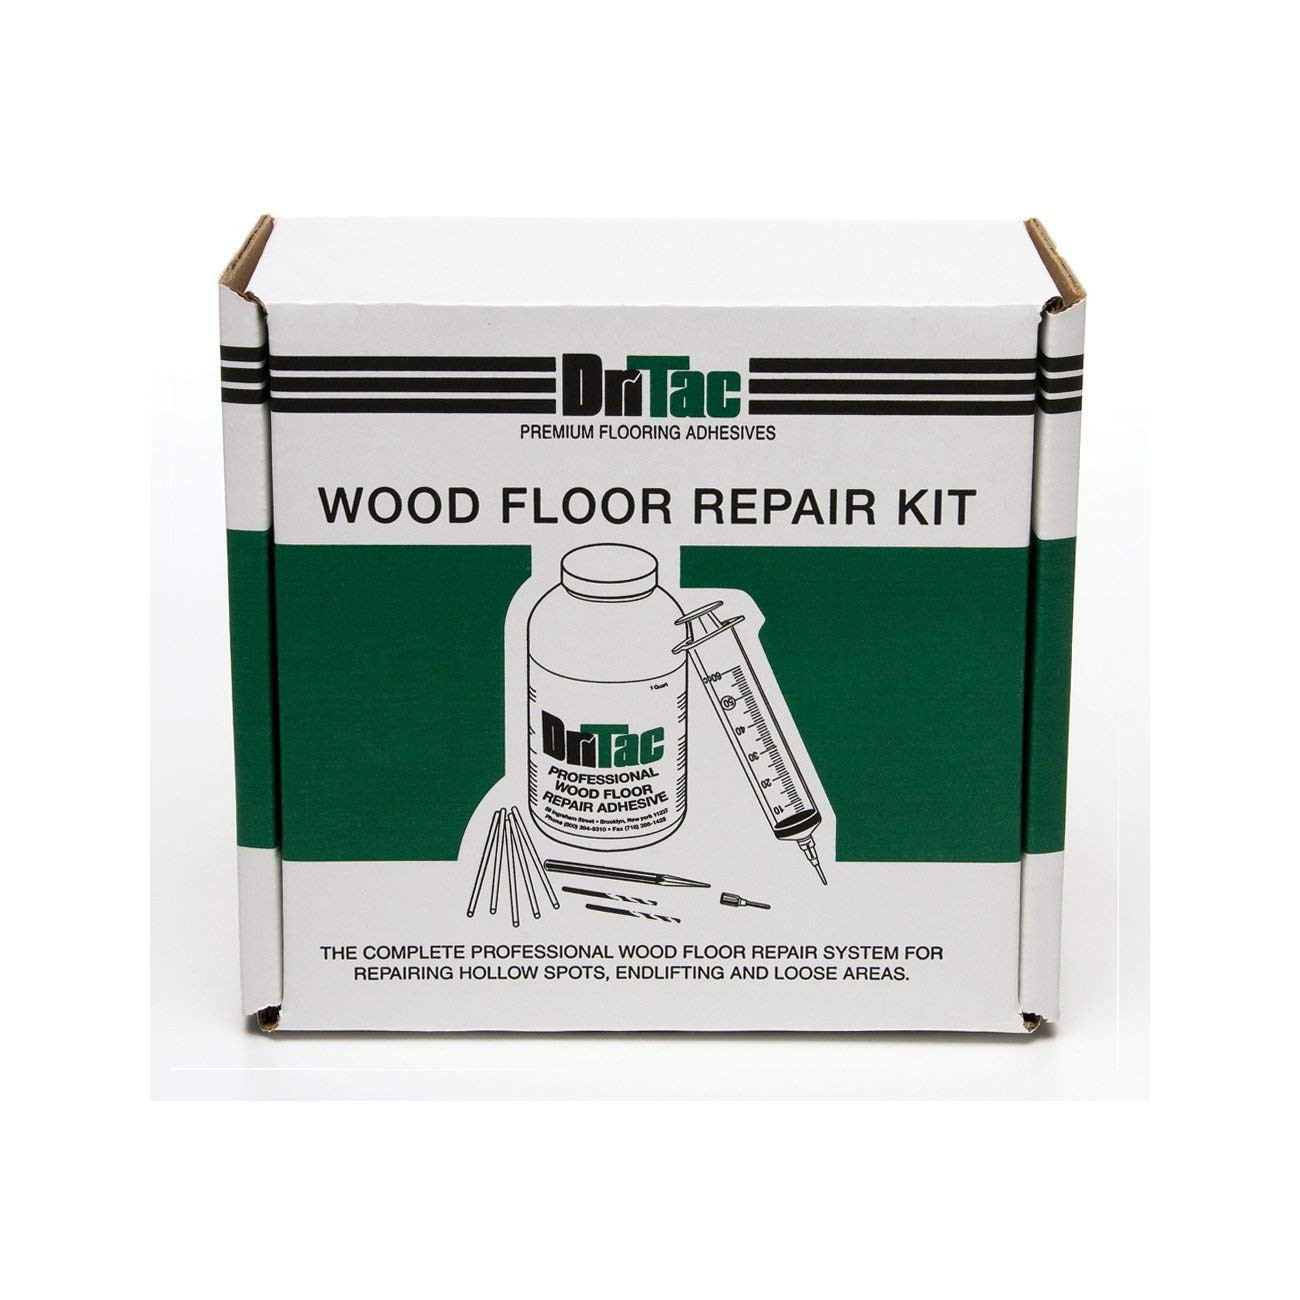 Engineered Hardwood Flooring Installation tools Of Amazon Com Dritac Wood Floor Repair Kit Engineered Flooring Only for Amazon Com Dritac Wood Floor Repair Kit Engineered Flooring Only 32oz Home Kitchen